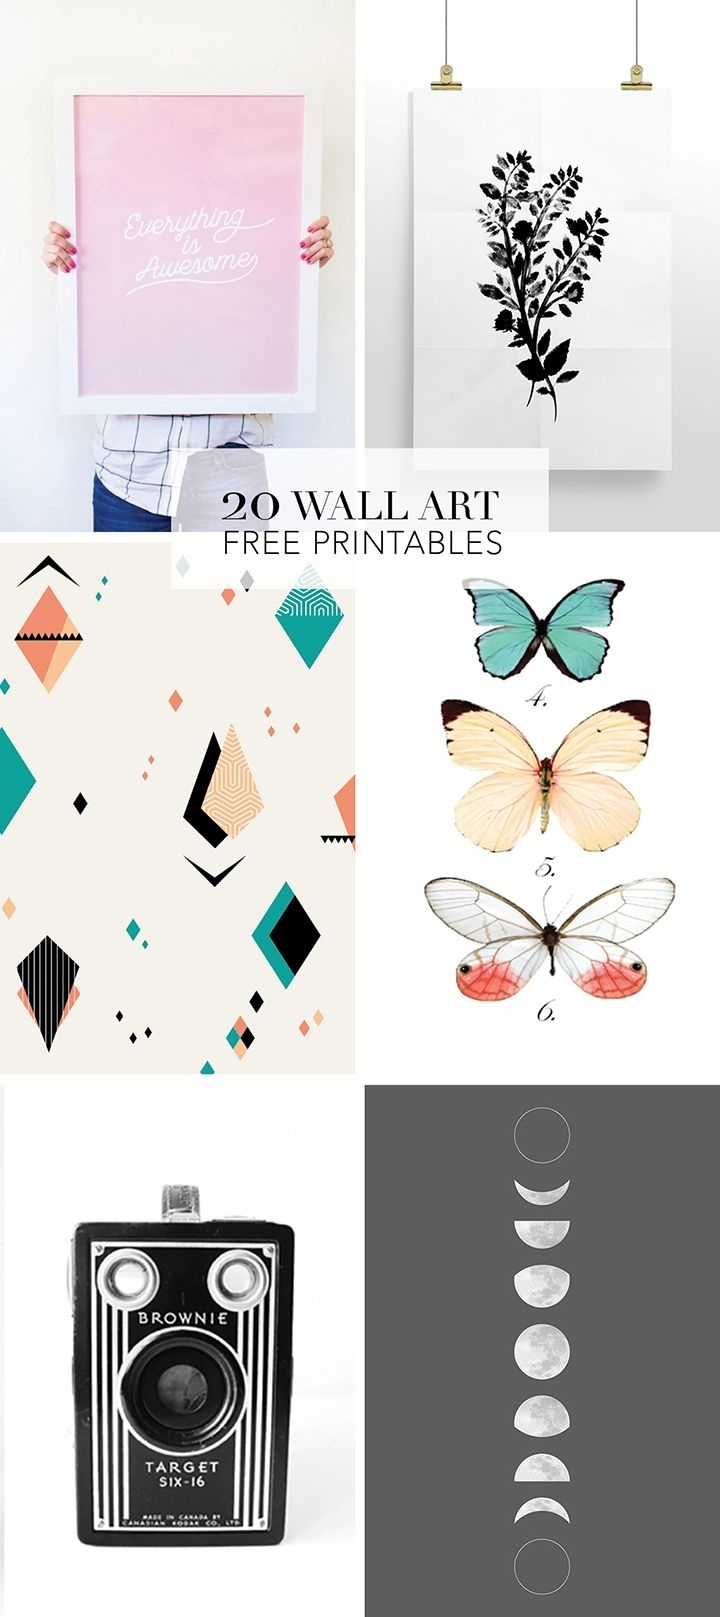 20 Favorite Wall Art Free Printables | Diy Wall Decor | Pinterest In Free Printable Wall Art Decors (Photo 4 of 20)